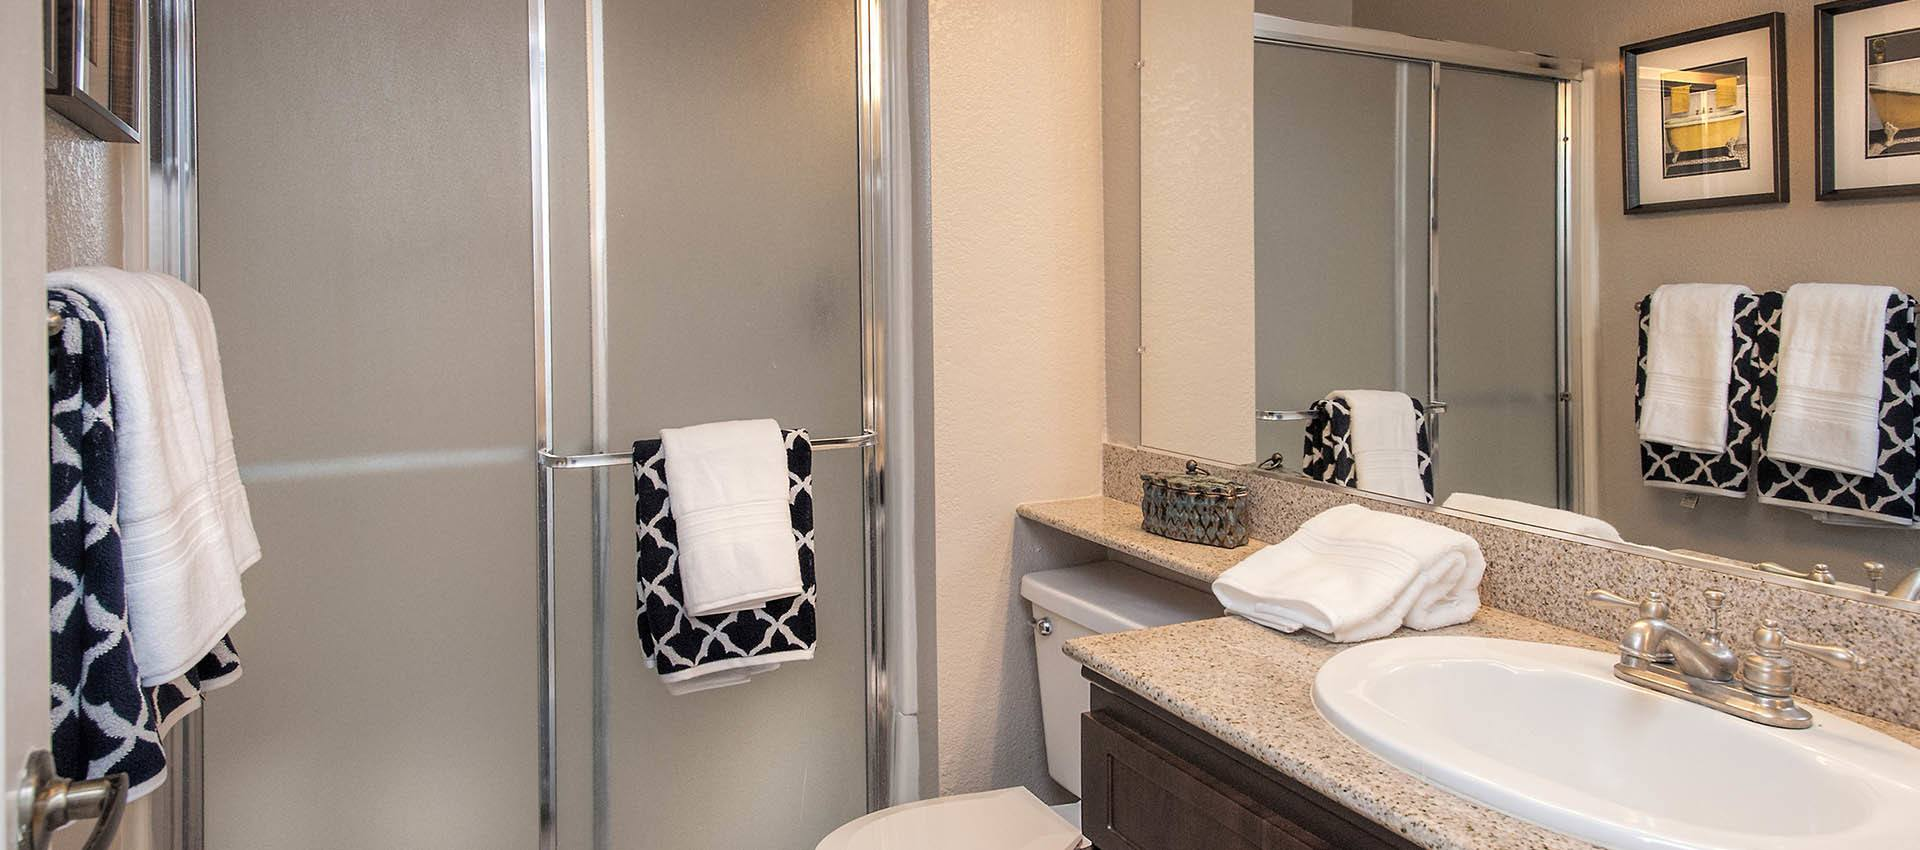 Bathroom With Shower at Deer Valley Apartment Homes in Roseville, California